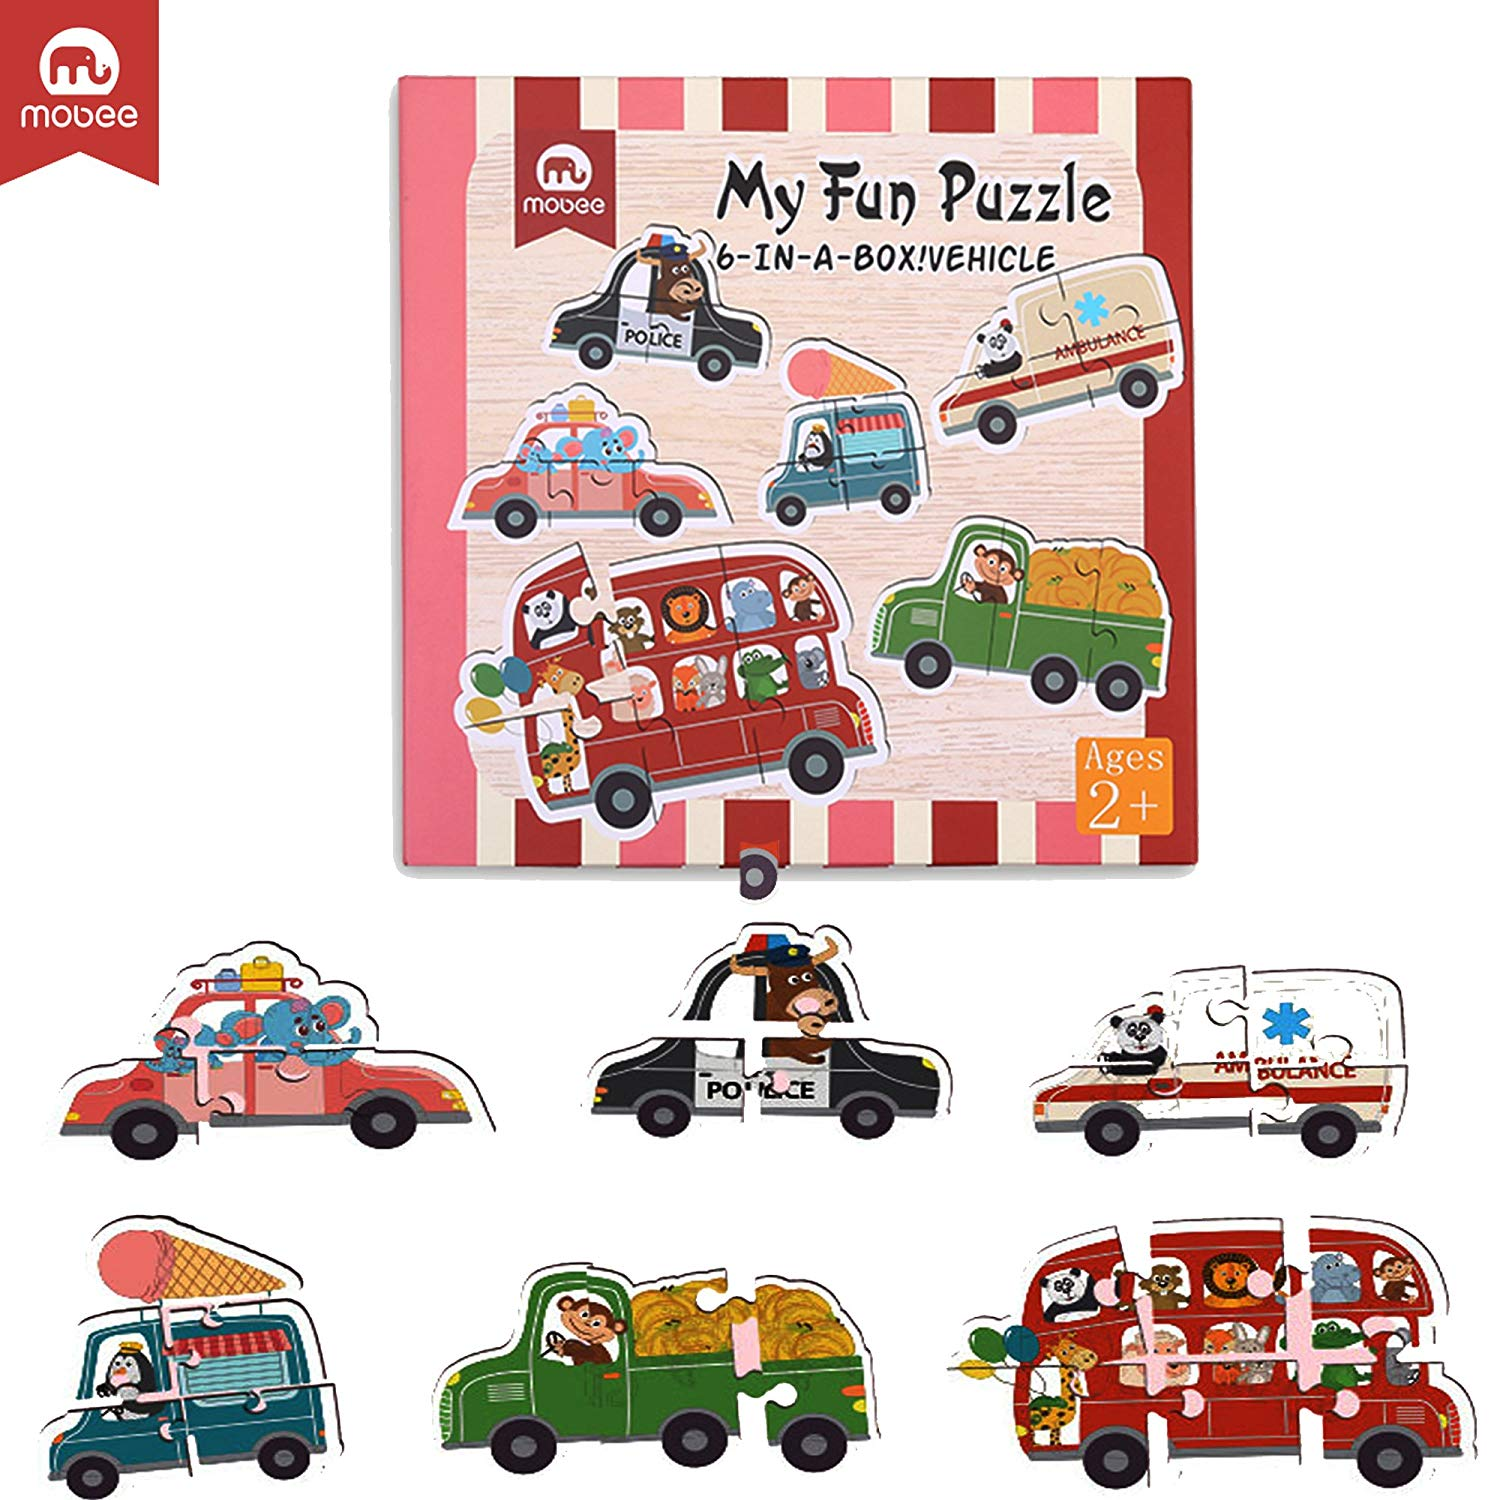 puzzles year jigsaw sample mobee reference puzzle preschool children educational counting aged toddlers playing learning kid vehicle walmart